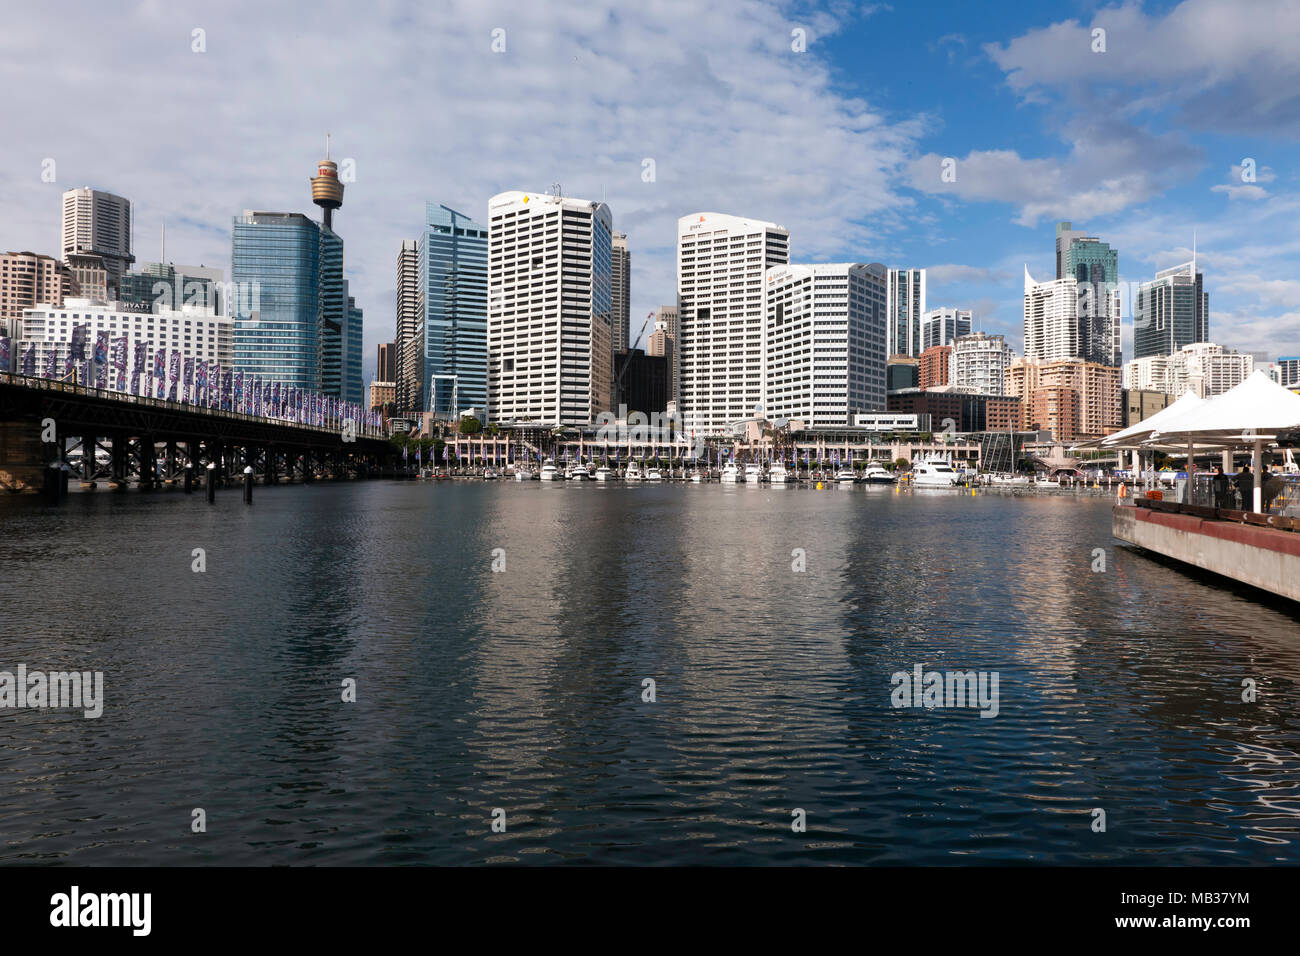 View of Darling Harbour,  Sydney, New South Wales, Australia - Stock Image